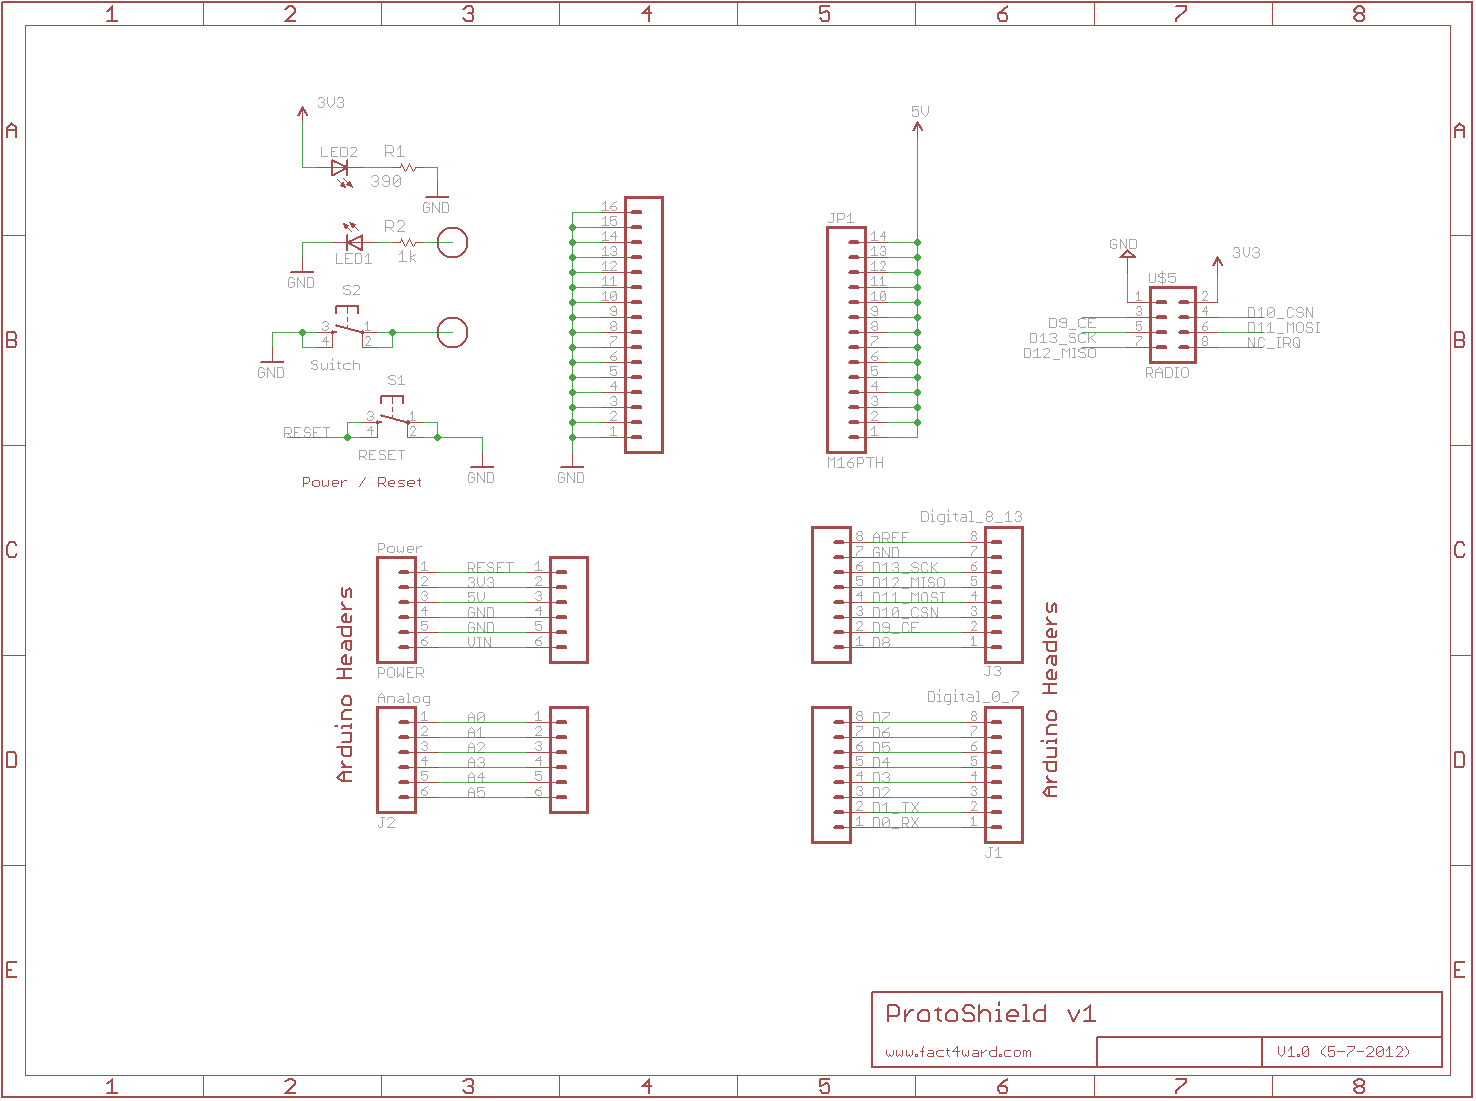 NRF24L01plus schematic